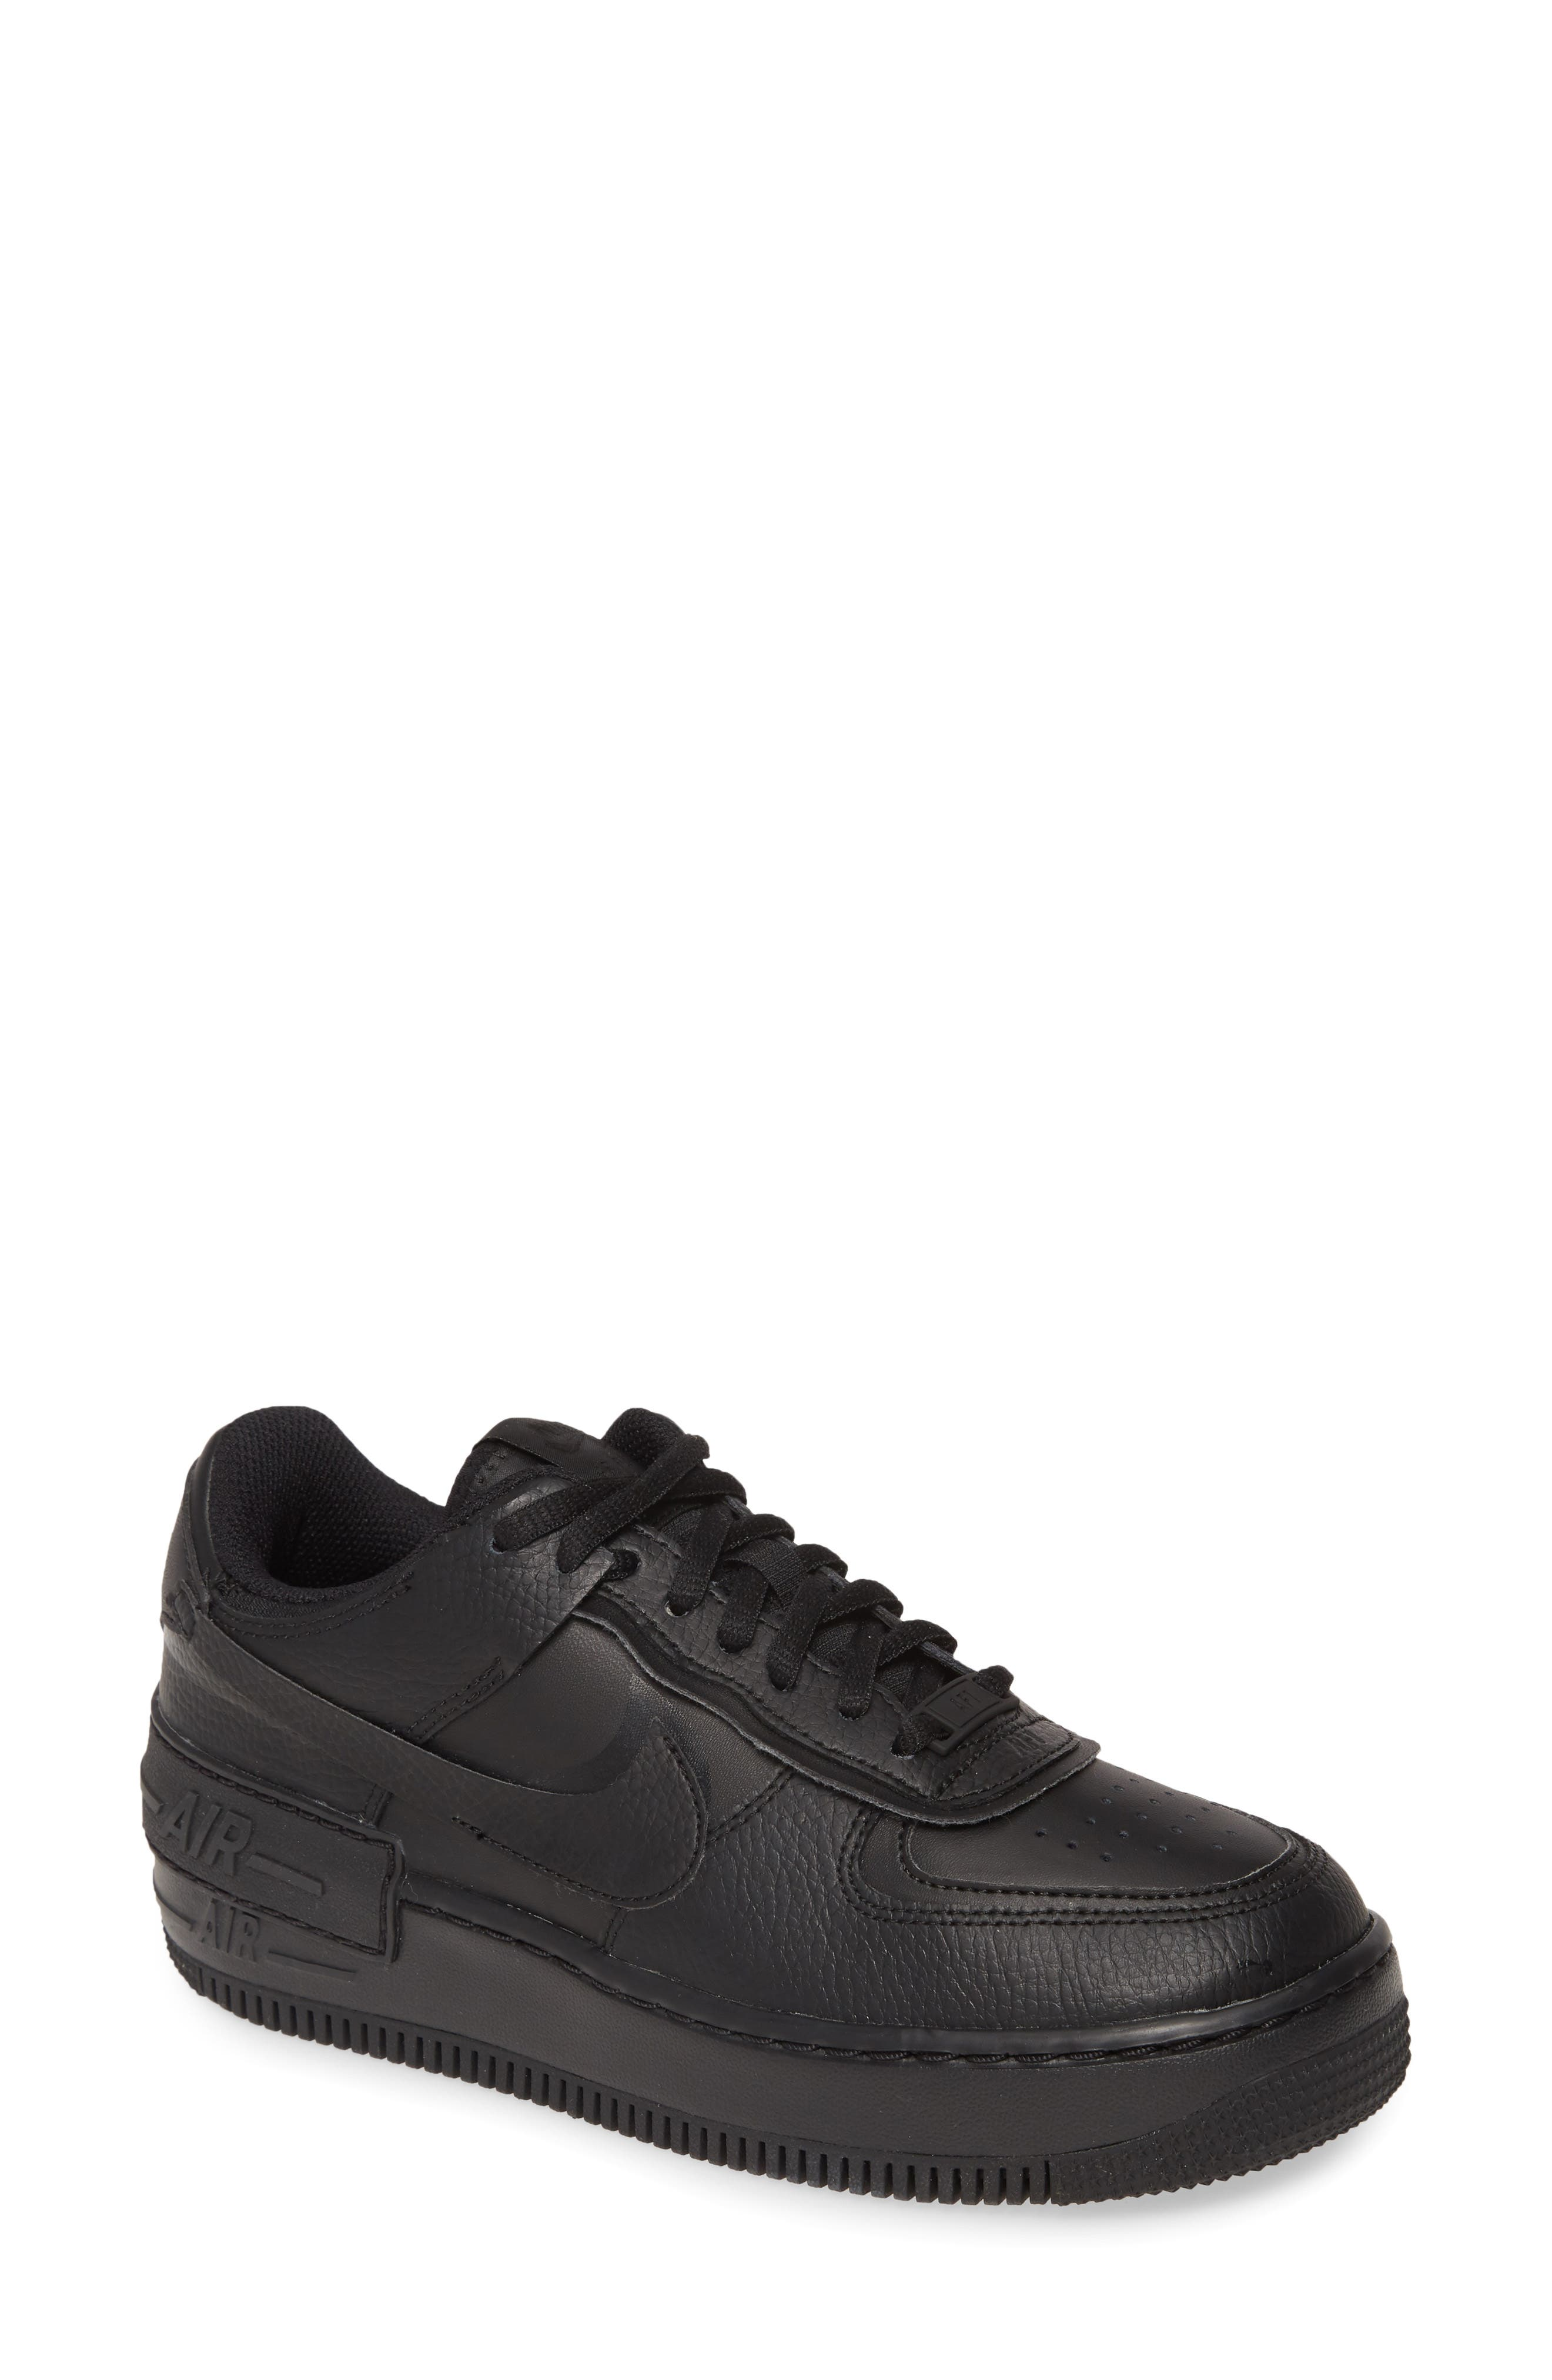 black nikes shoes | Nordstrom